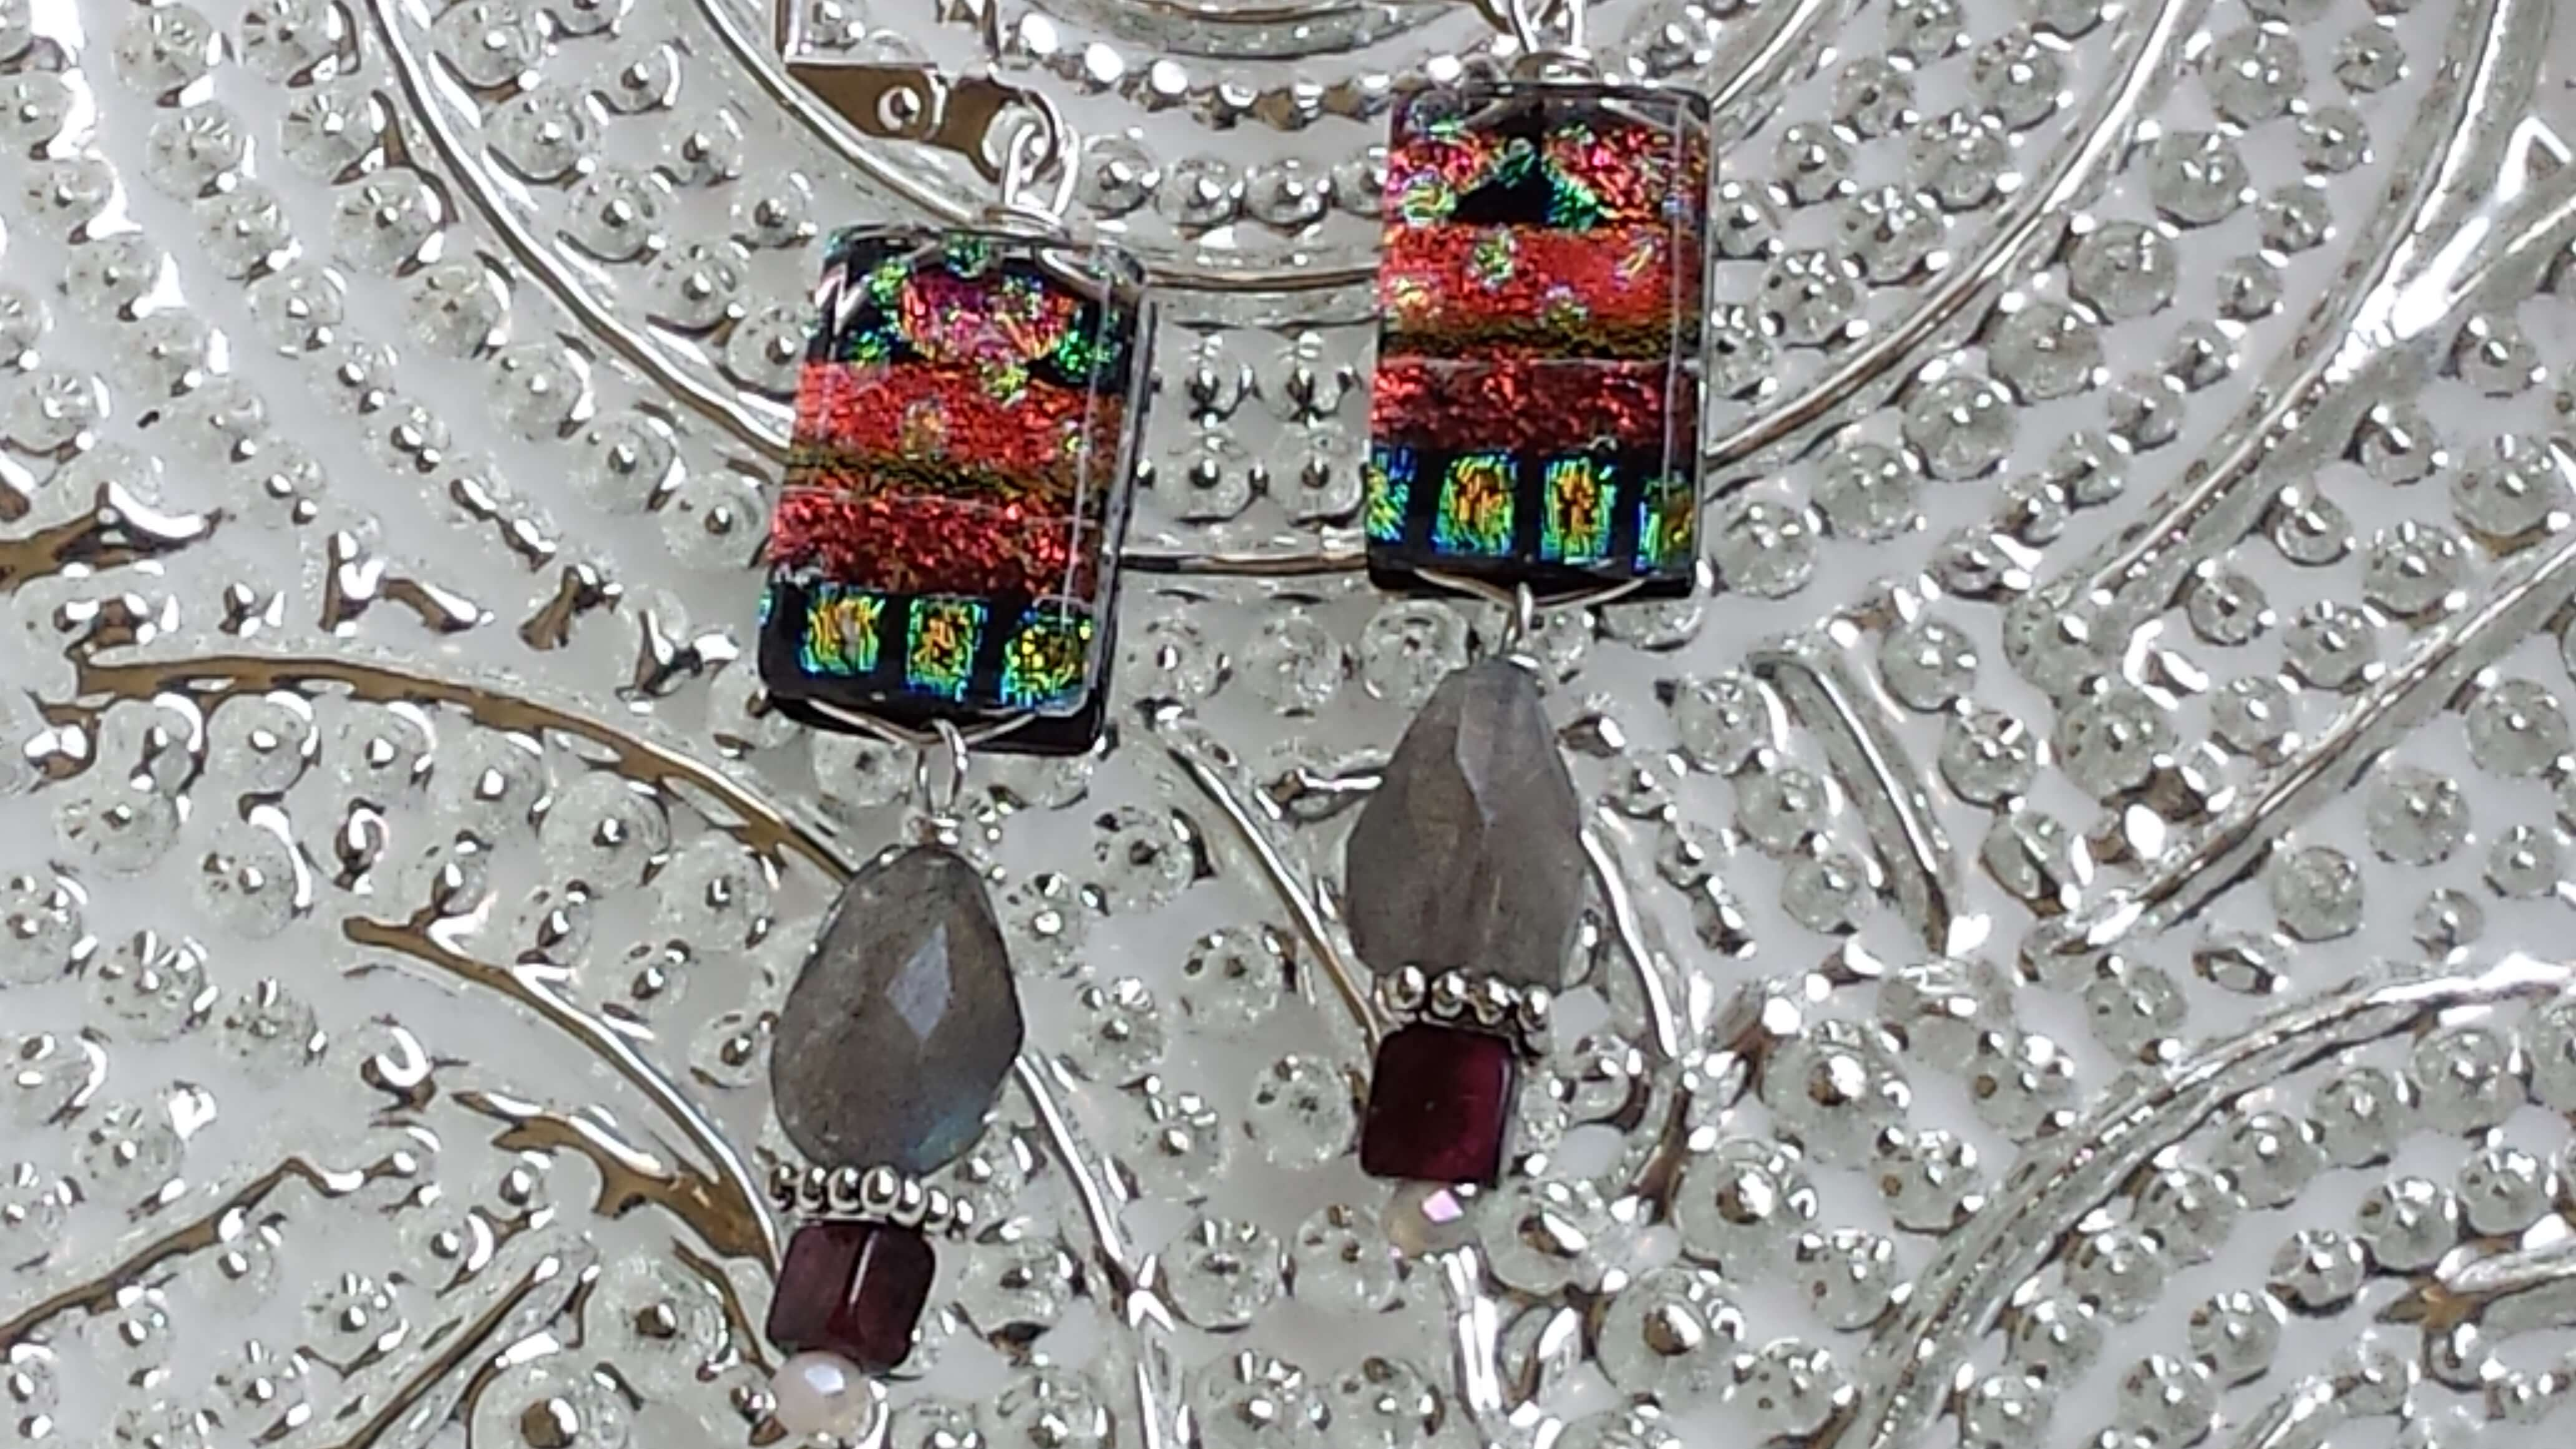 handmade glass jewelry, Woodstock-New Paltz art & Crafts Fair